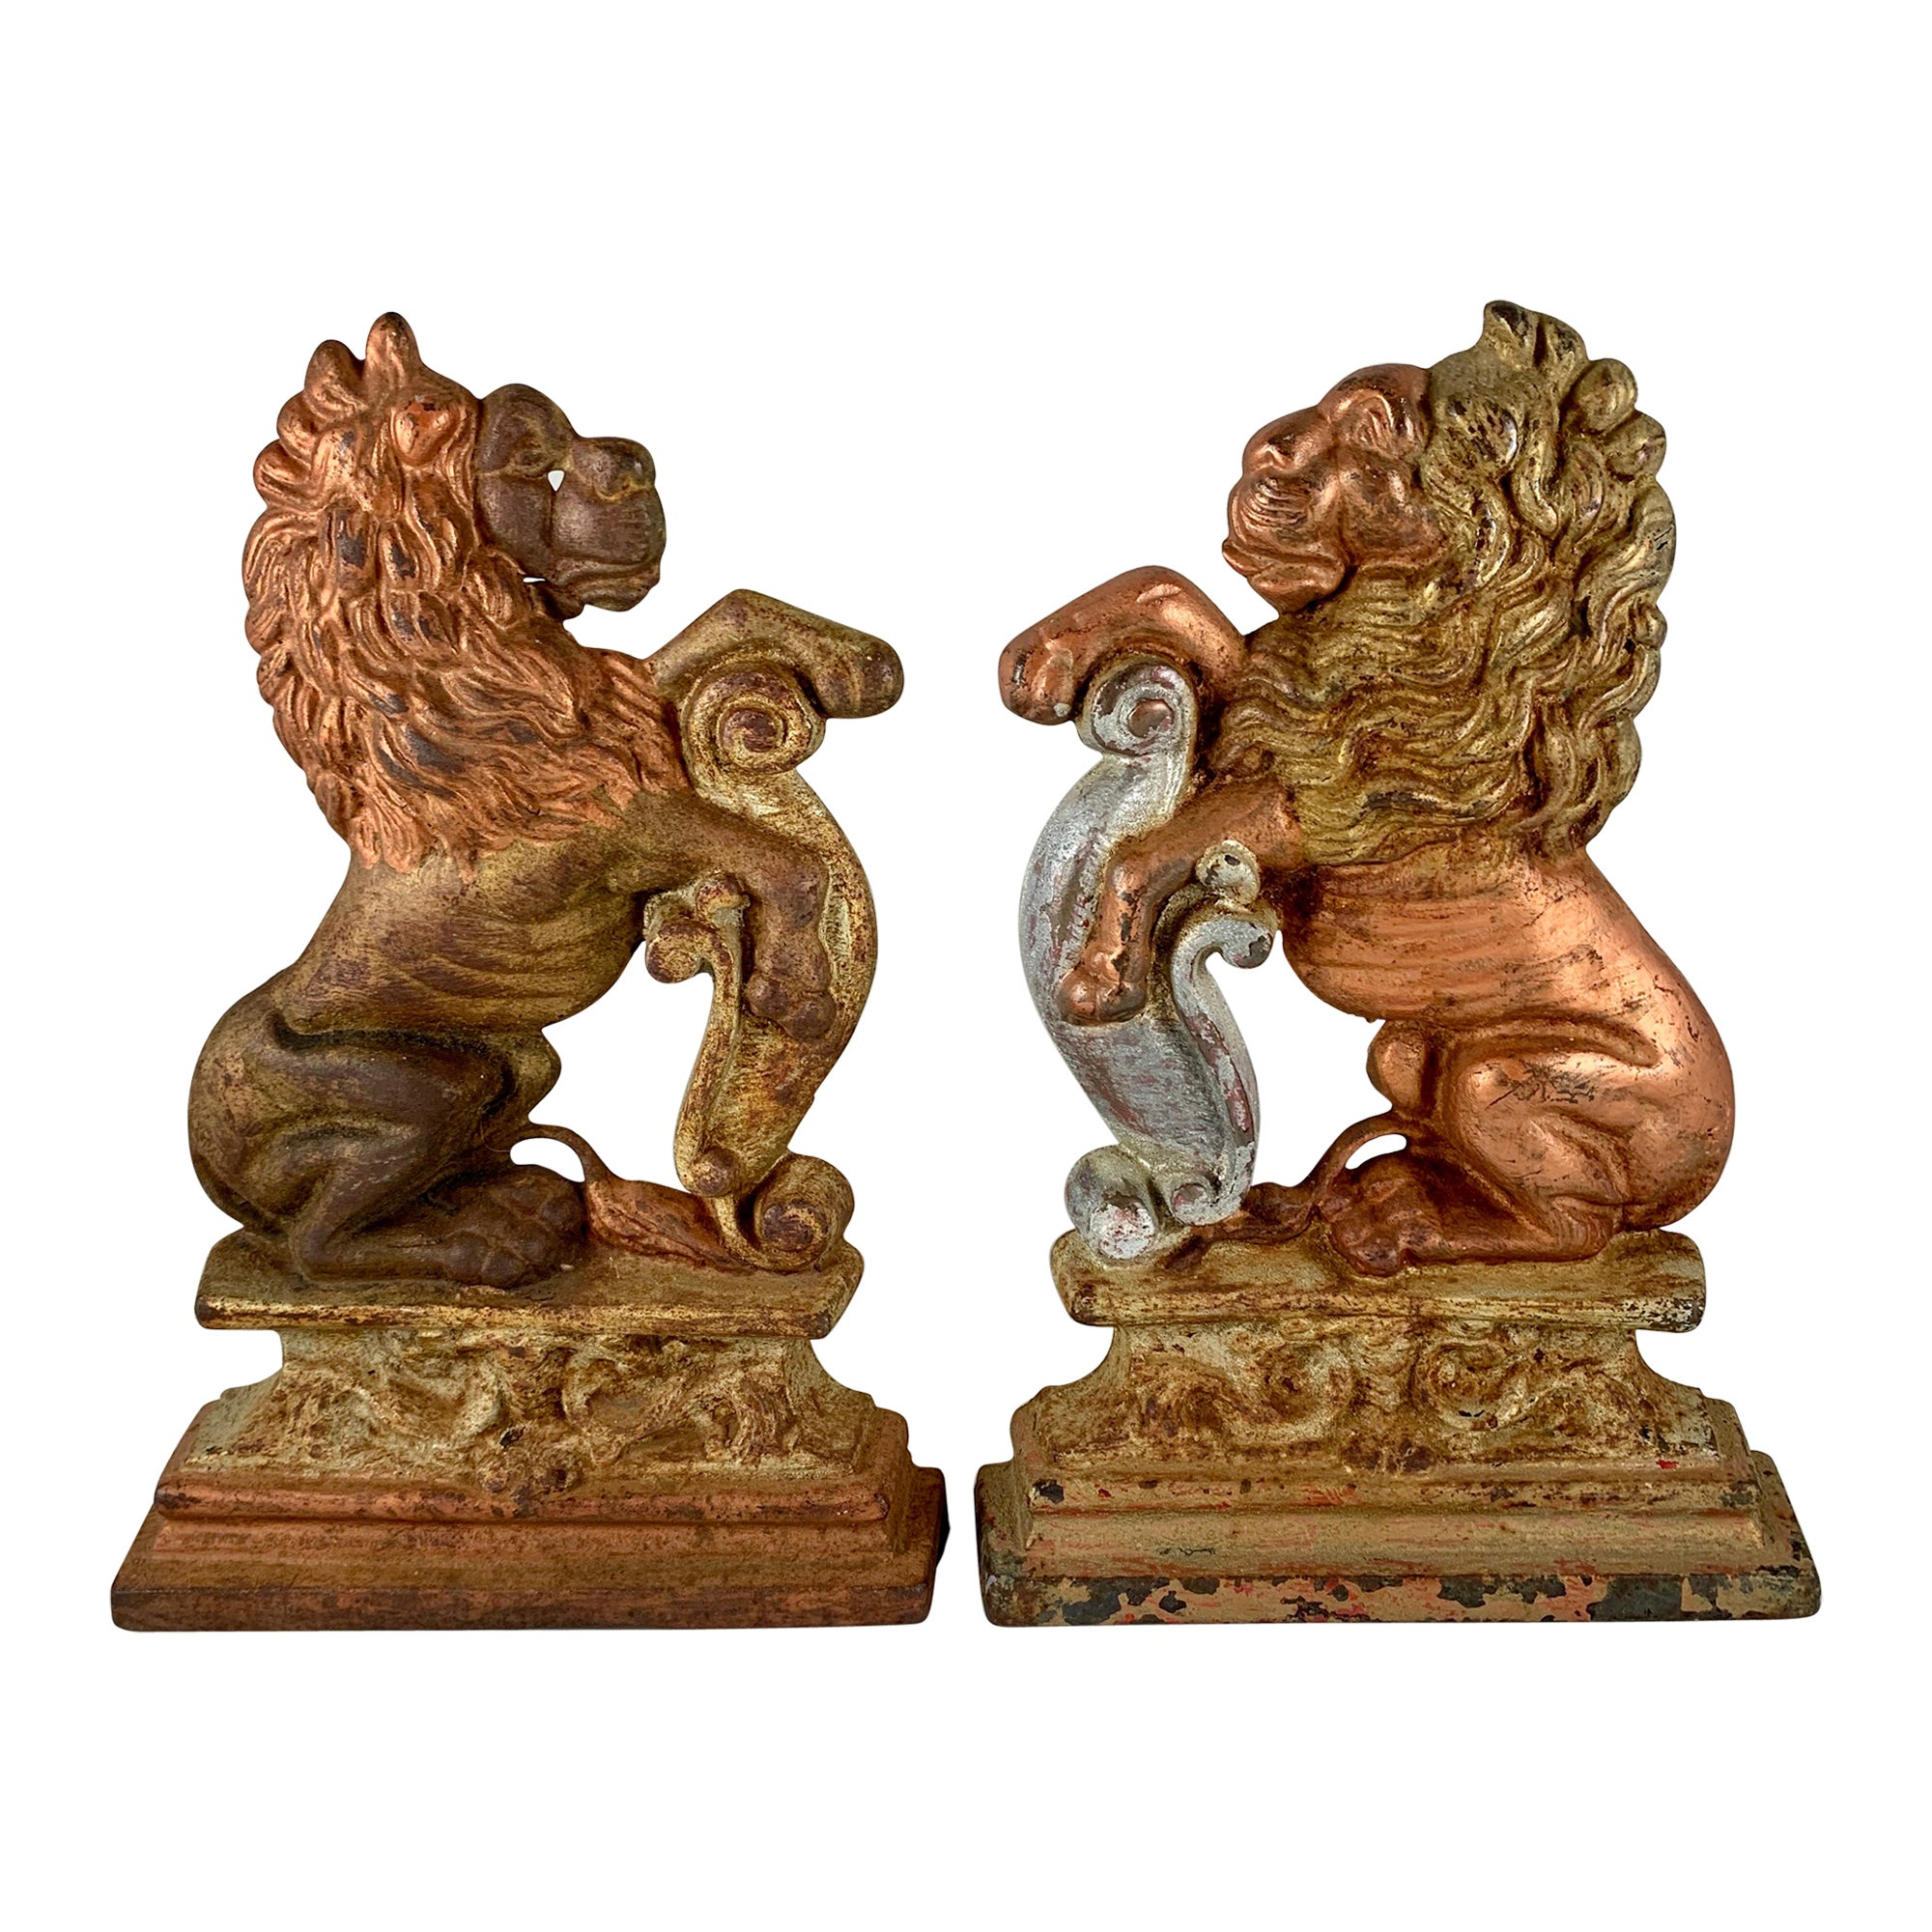 Vintage 1930s French Gilded Cast Iron Heraldic Lion Doorstops or Bookends a Pair